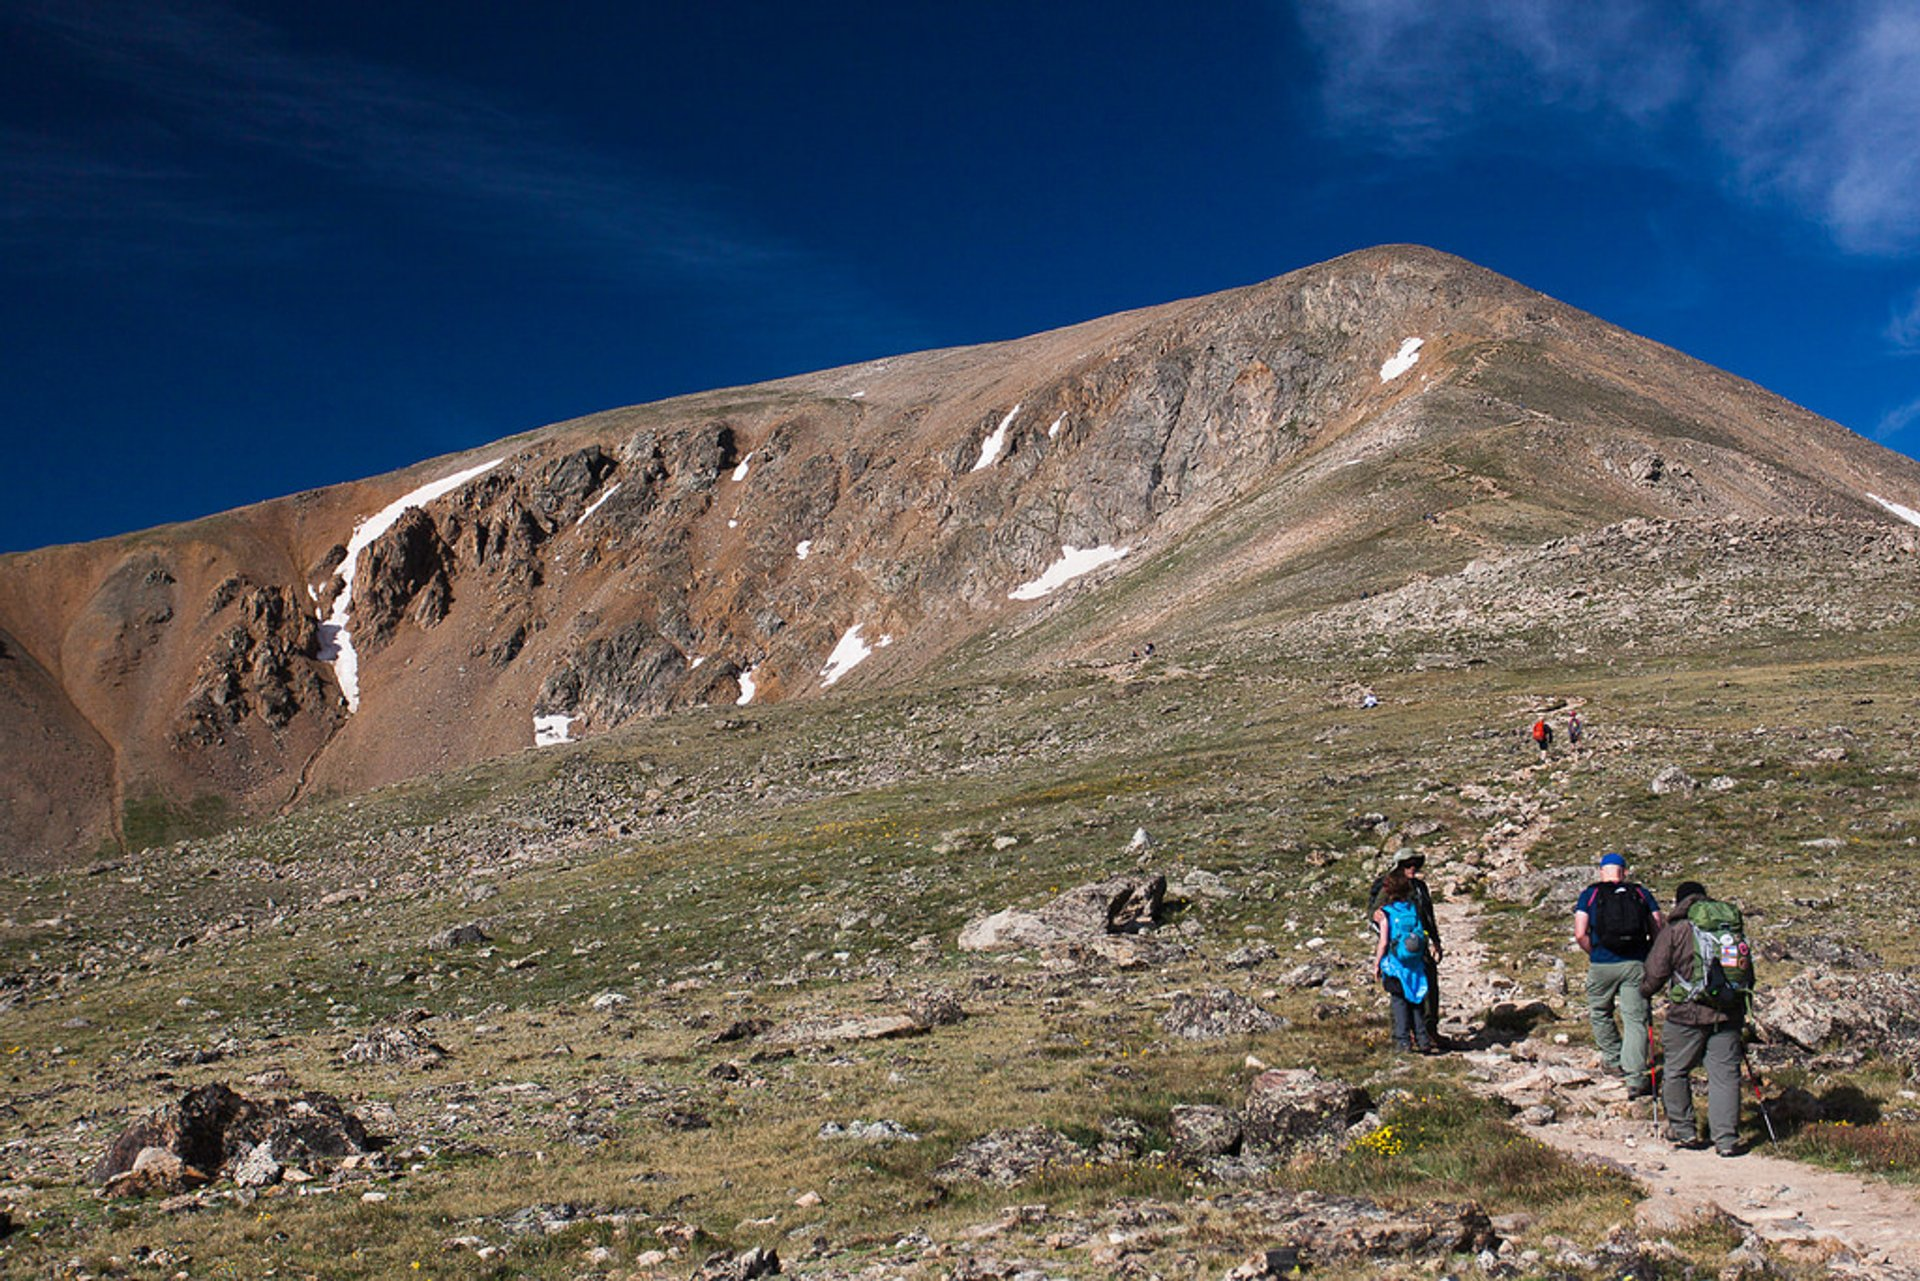 Climbing Mount Elbert in Colorado 2019 - Best Time